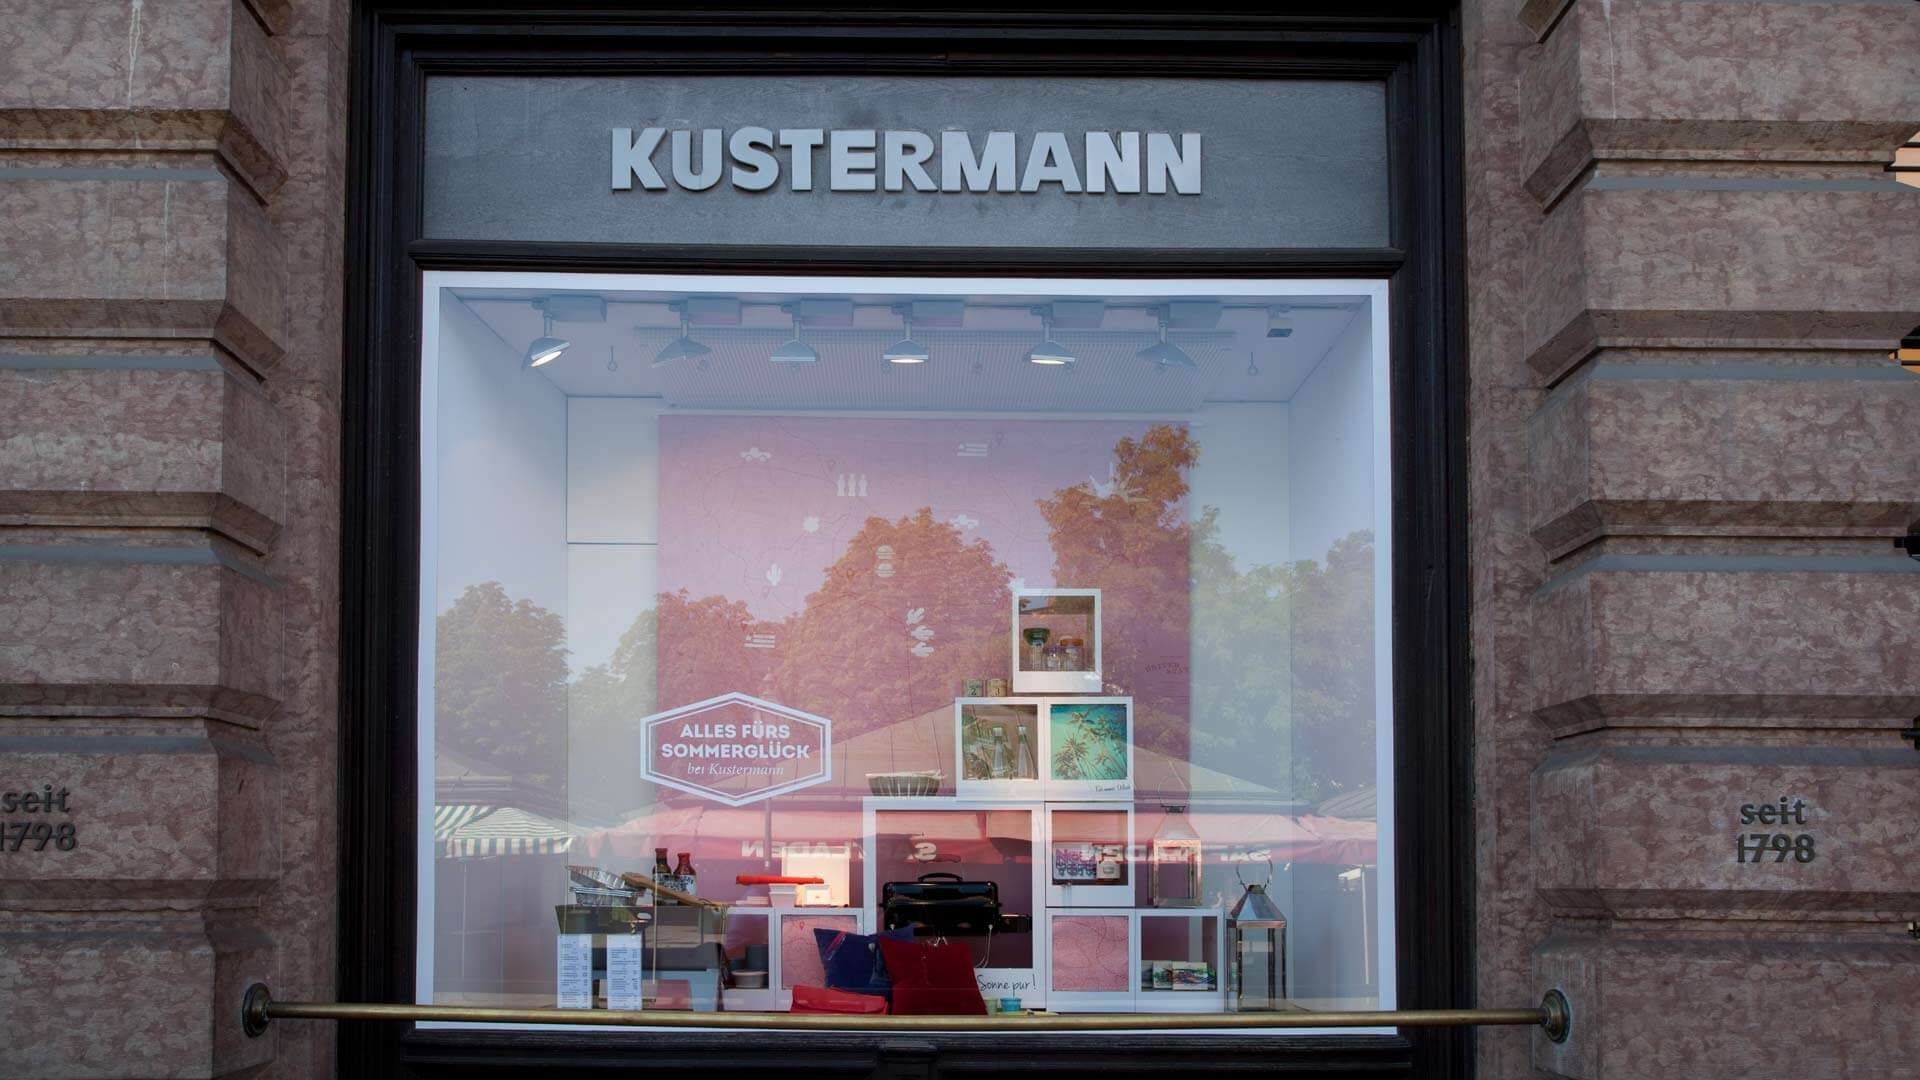 Photo of the Kustermann Store Window with Illustrated Background